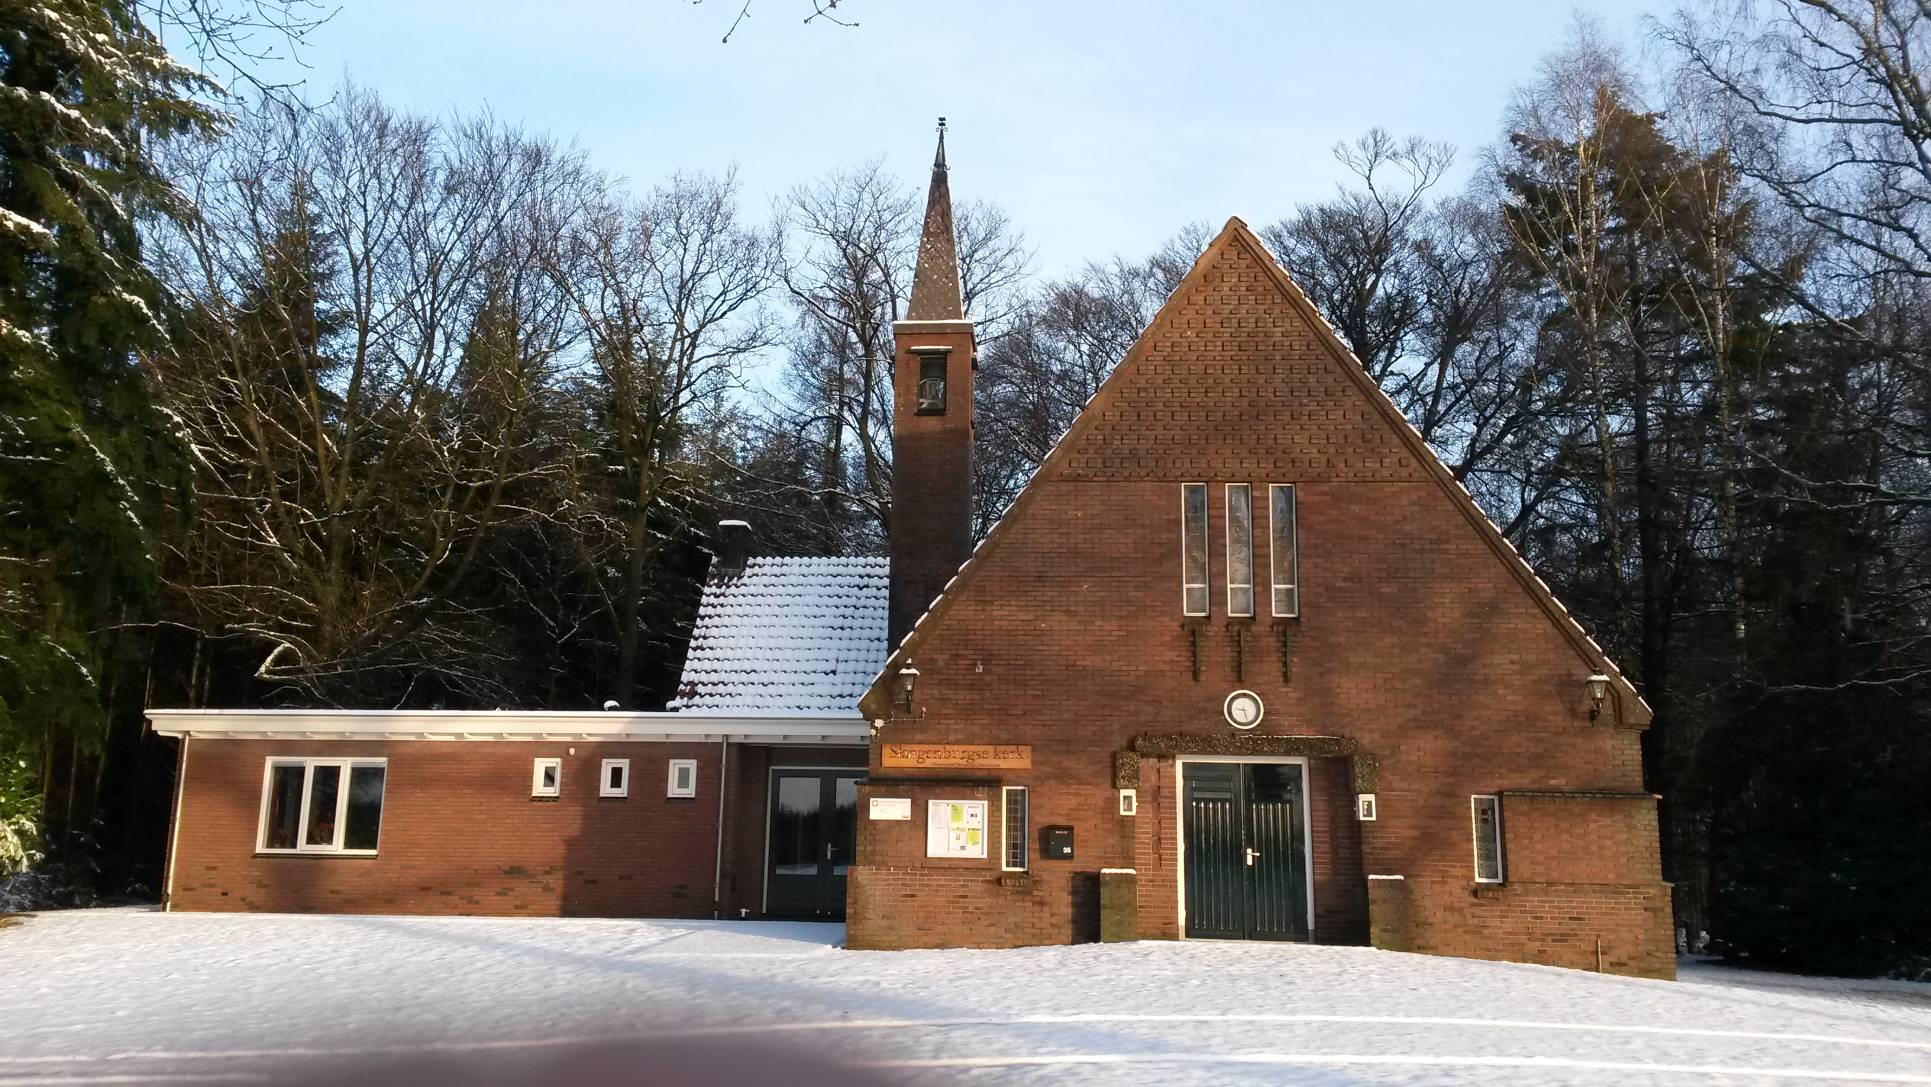 Slangenburgse kerk in de winter